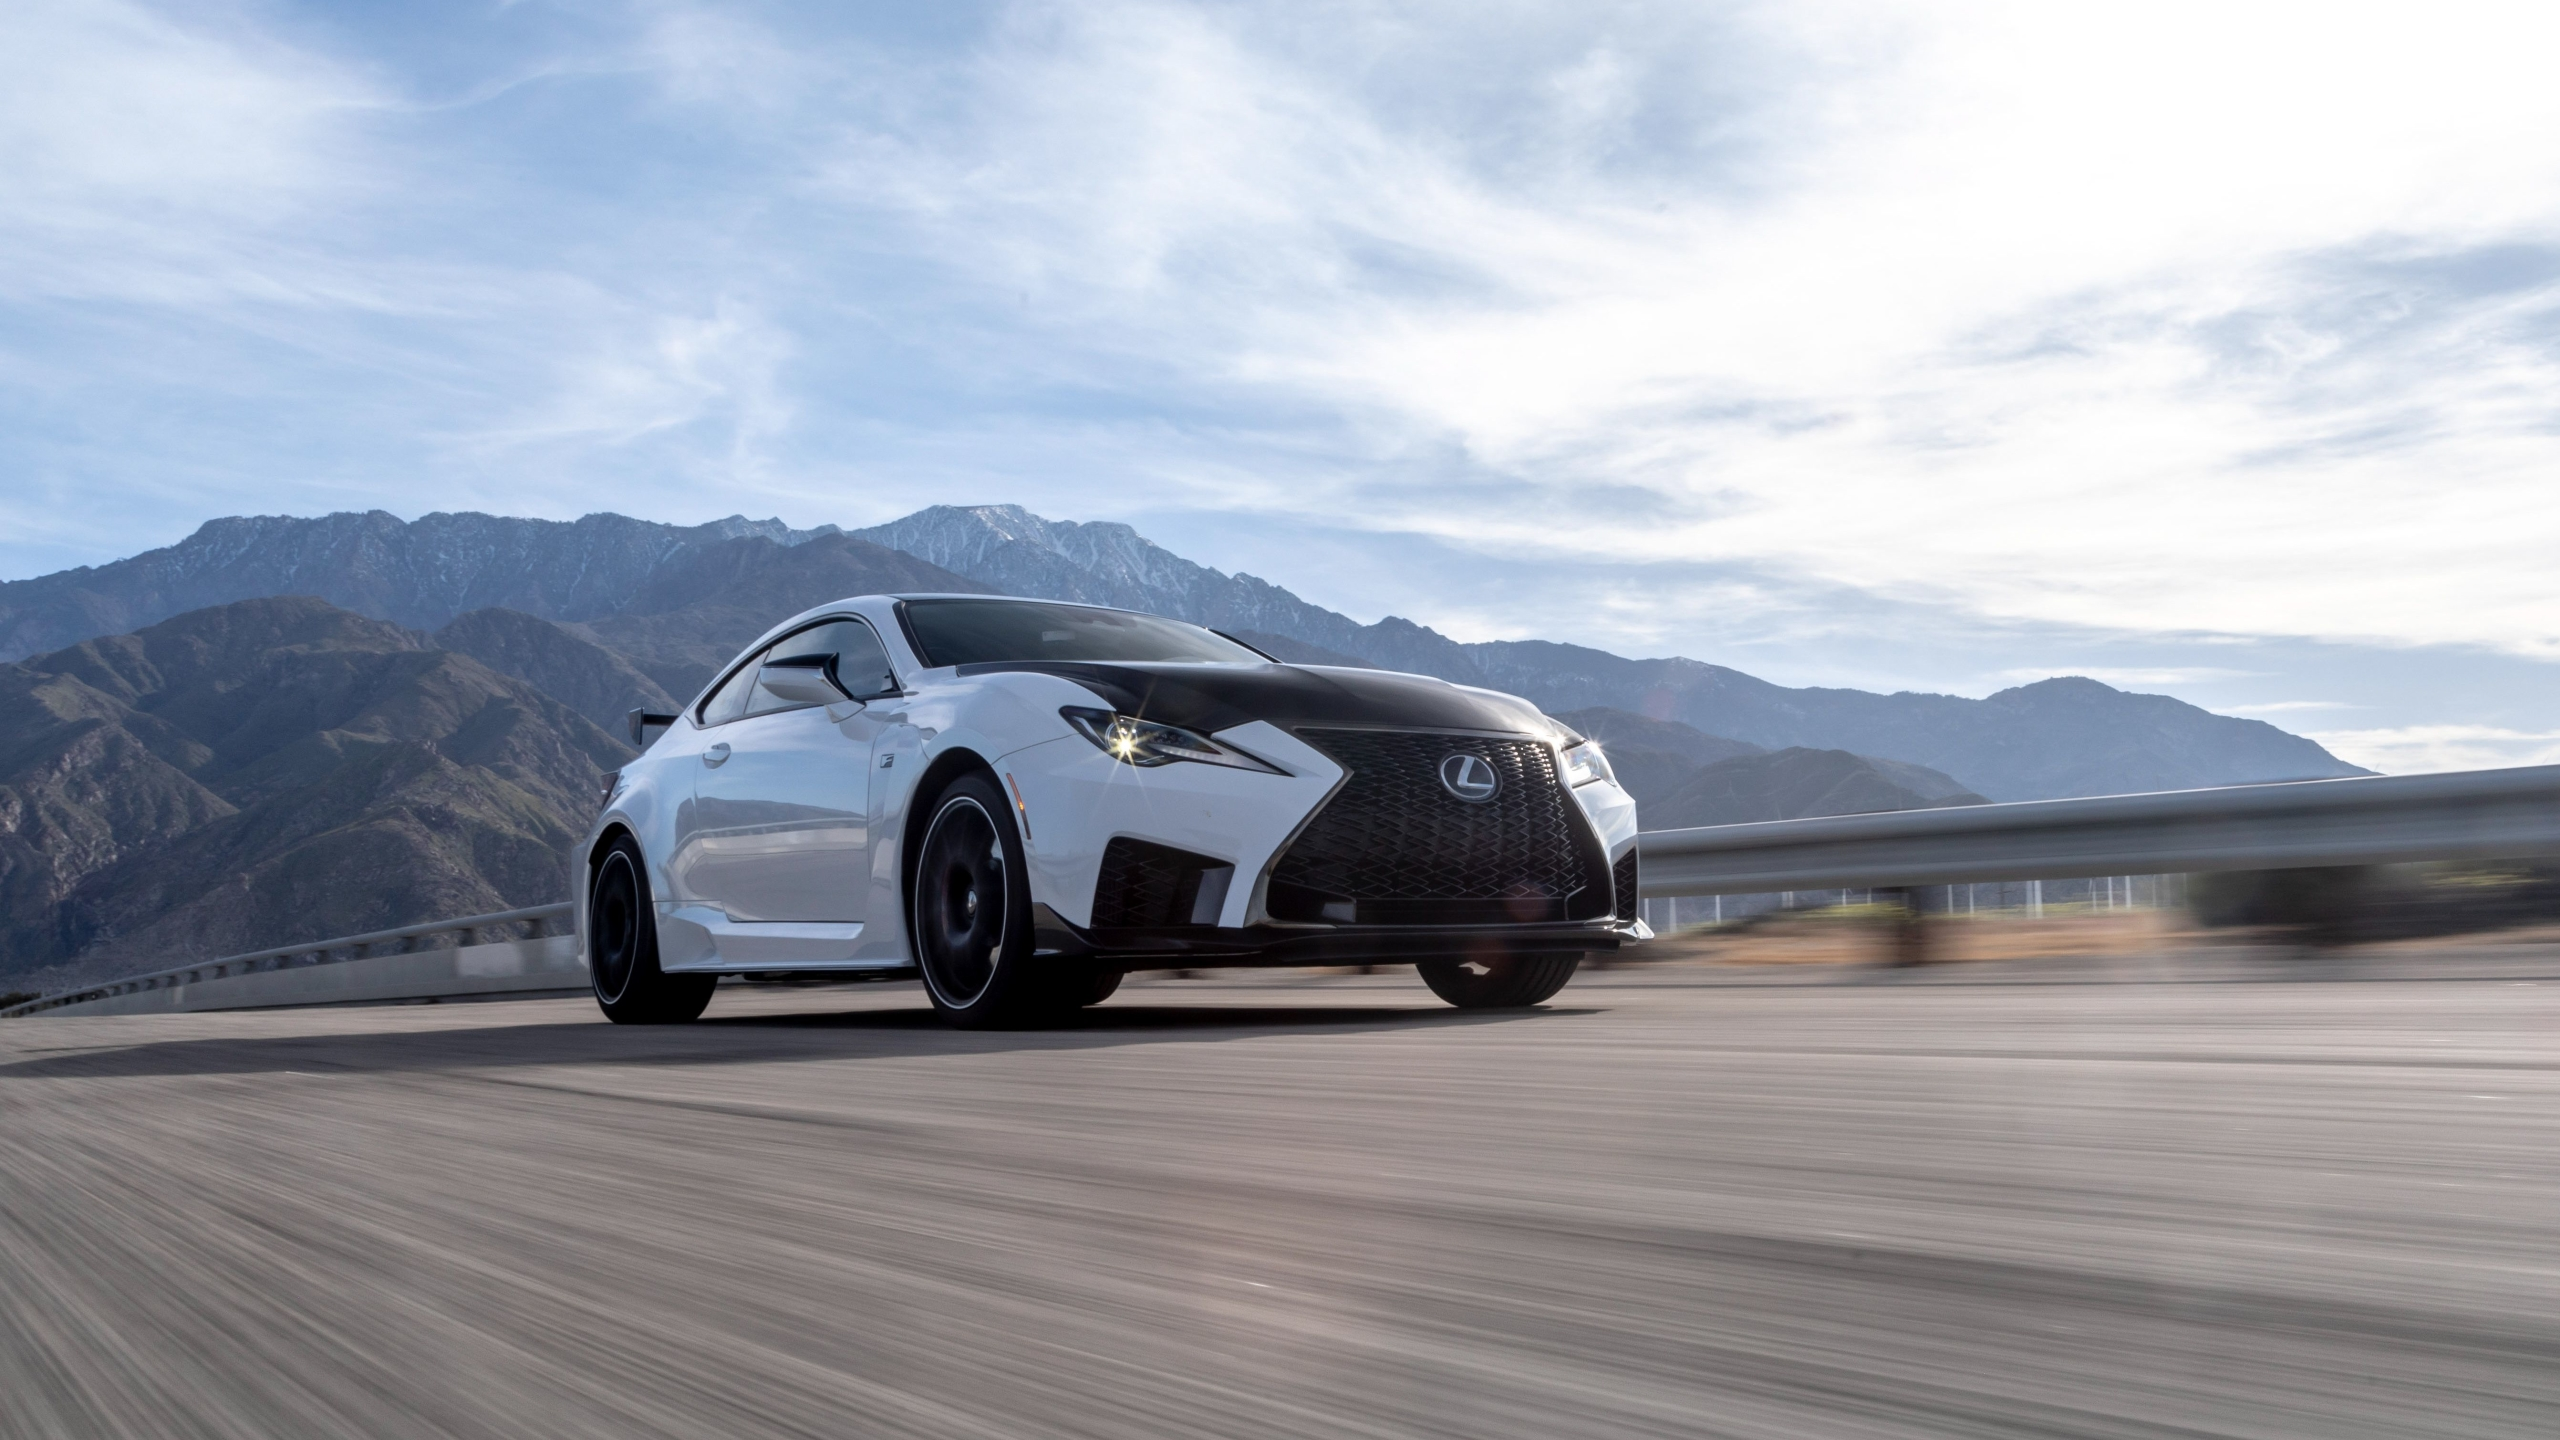 2560x1440 Lexus Rc F Track Edition 1440p Resolution